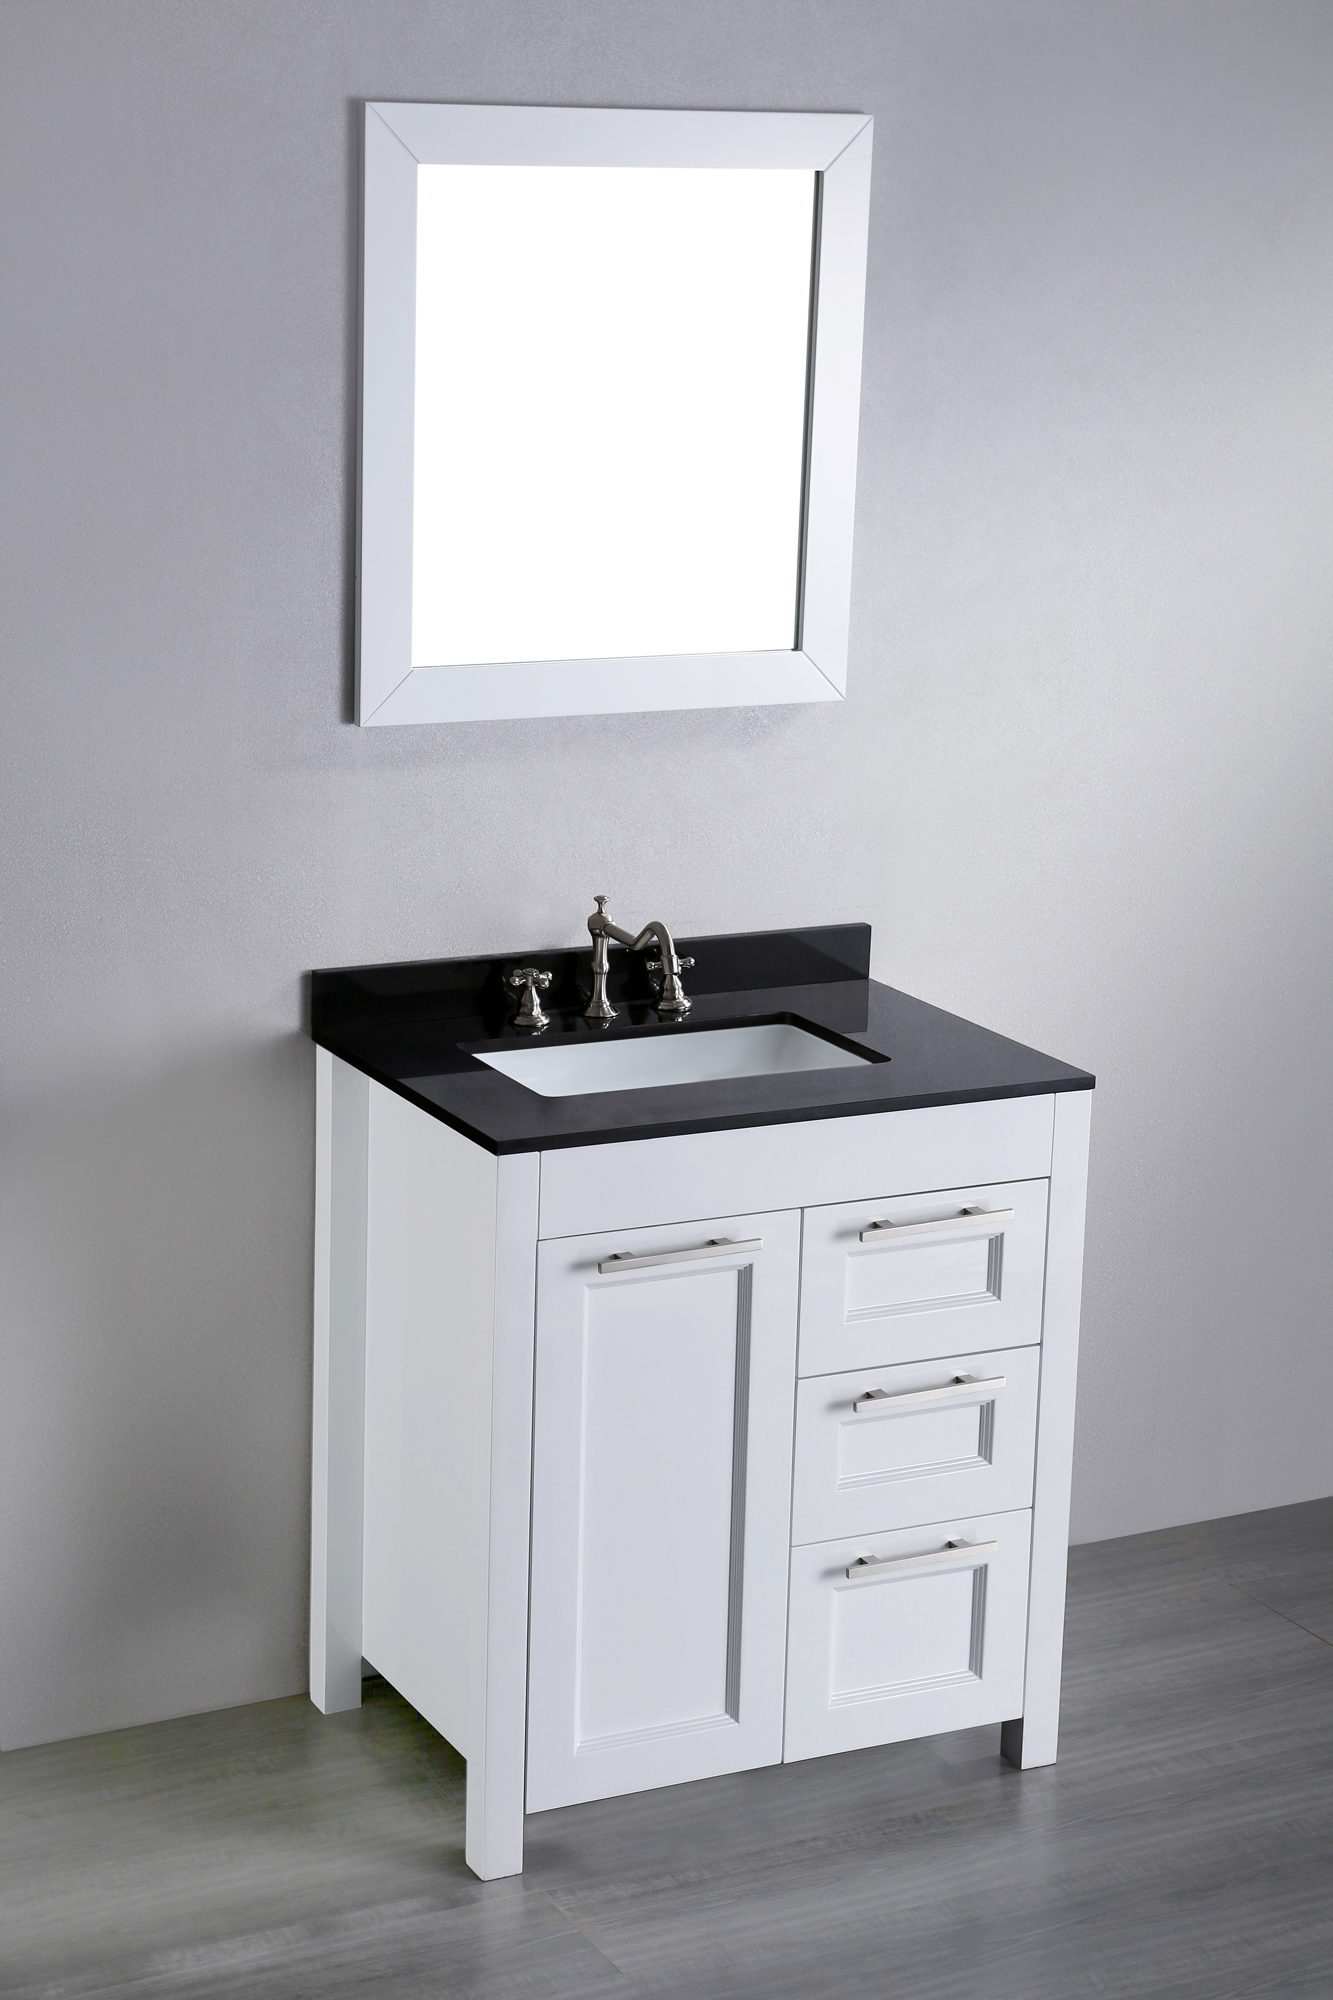 30 Inch Bathroom Vanity With Top White1333 X 2000